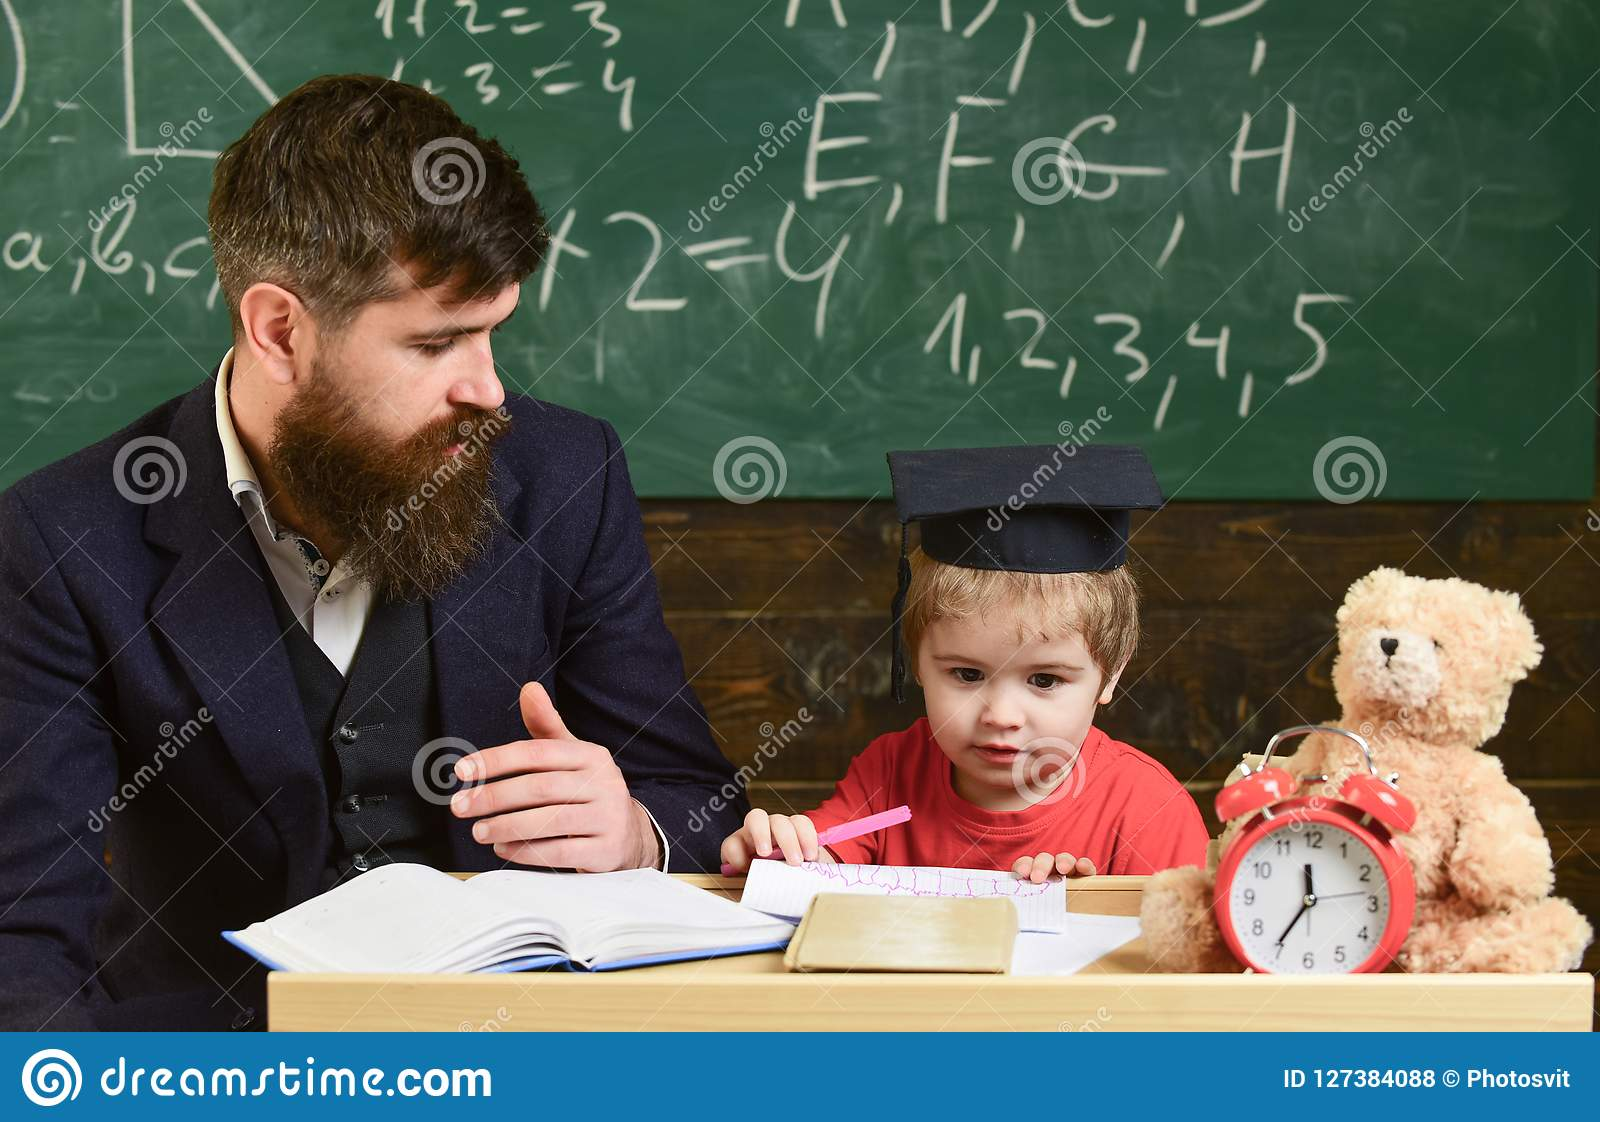 Elementary education. Kid studying with teacher. Father teaches son, discuss, explain. Education concept. Teacher in